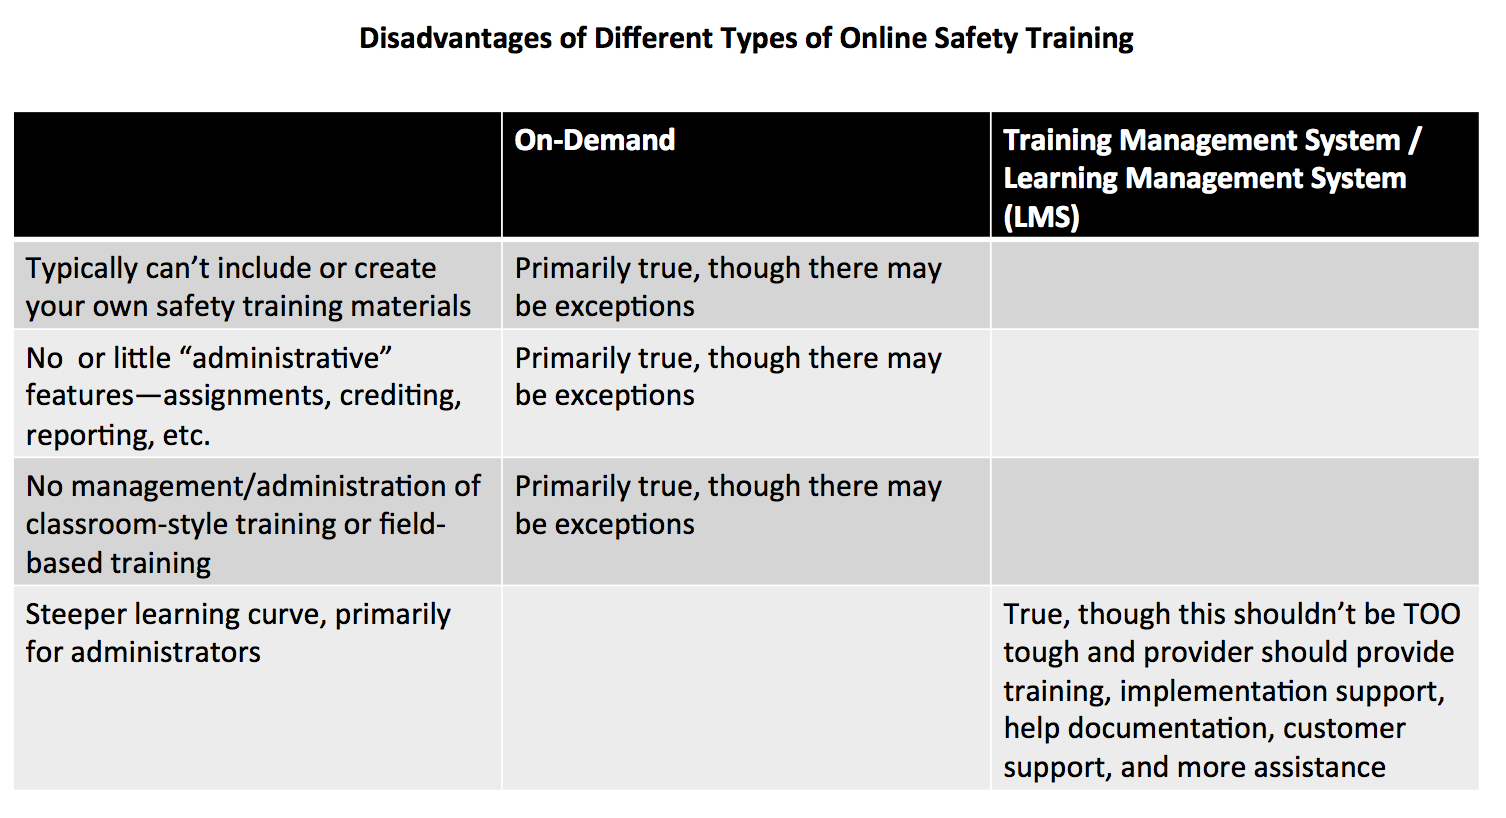 Disadvantages of different types of online safety training image